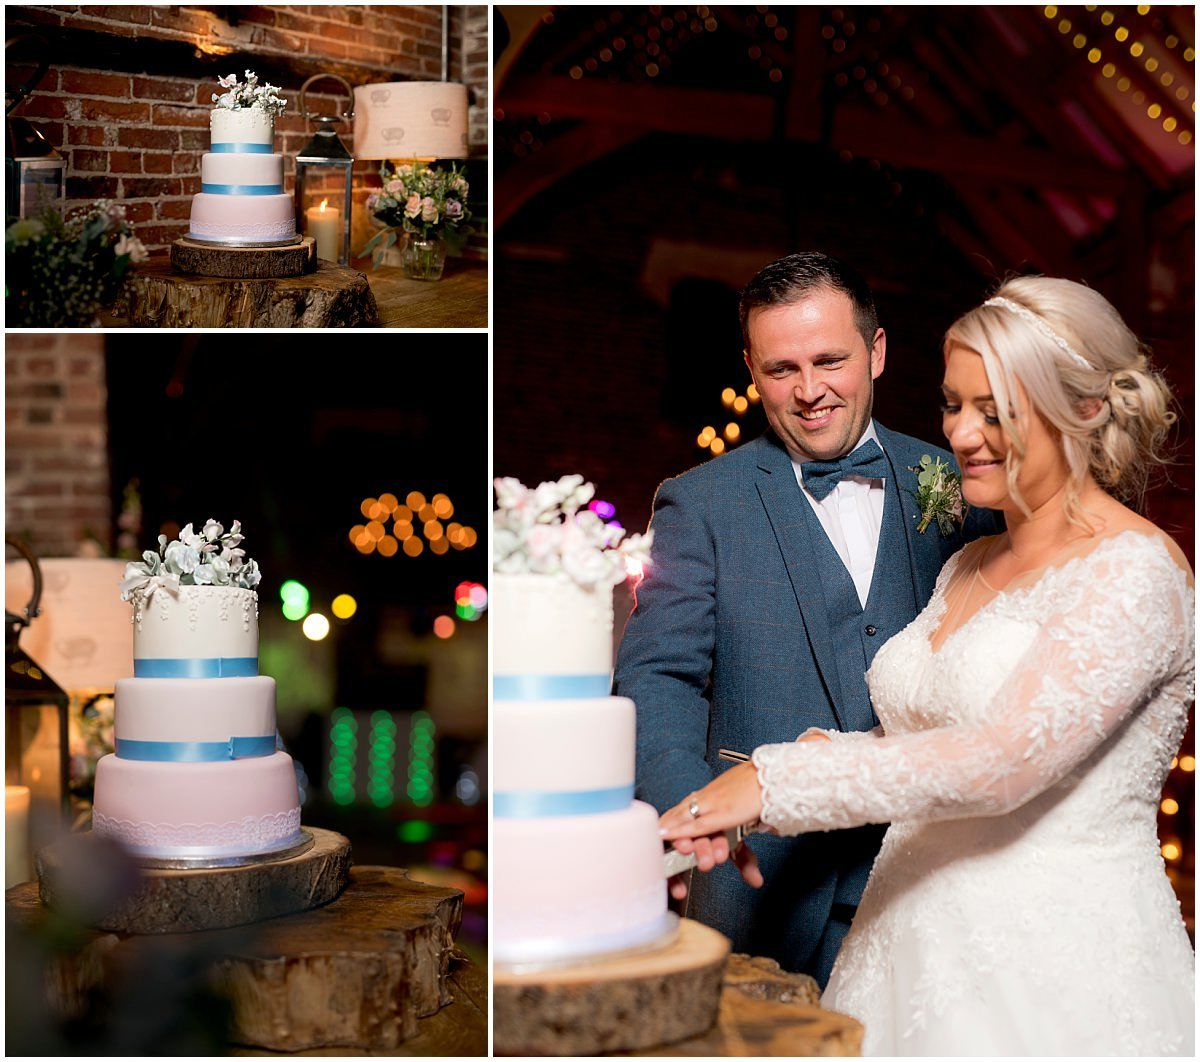 Wedding cake at Hazel Gap Barn